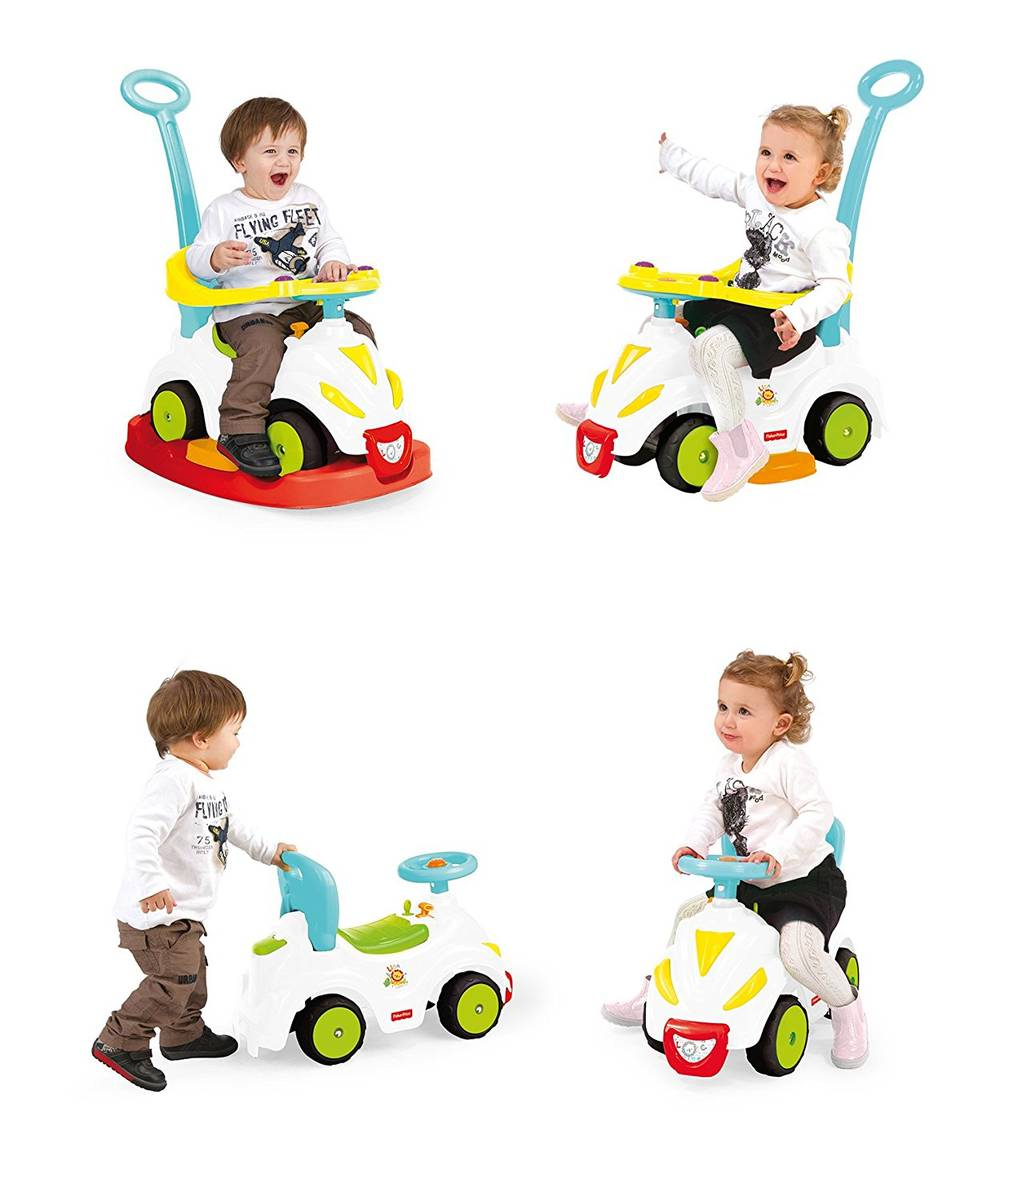 Masinuta 4 in 1 – Ride on rocker